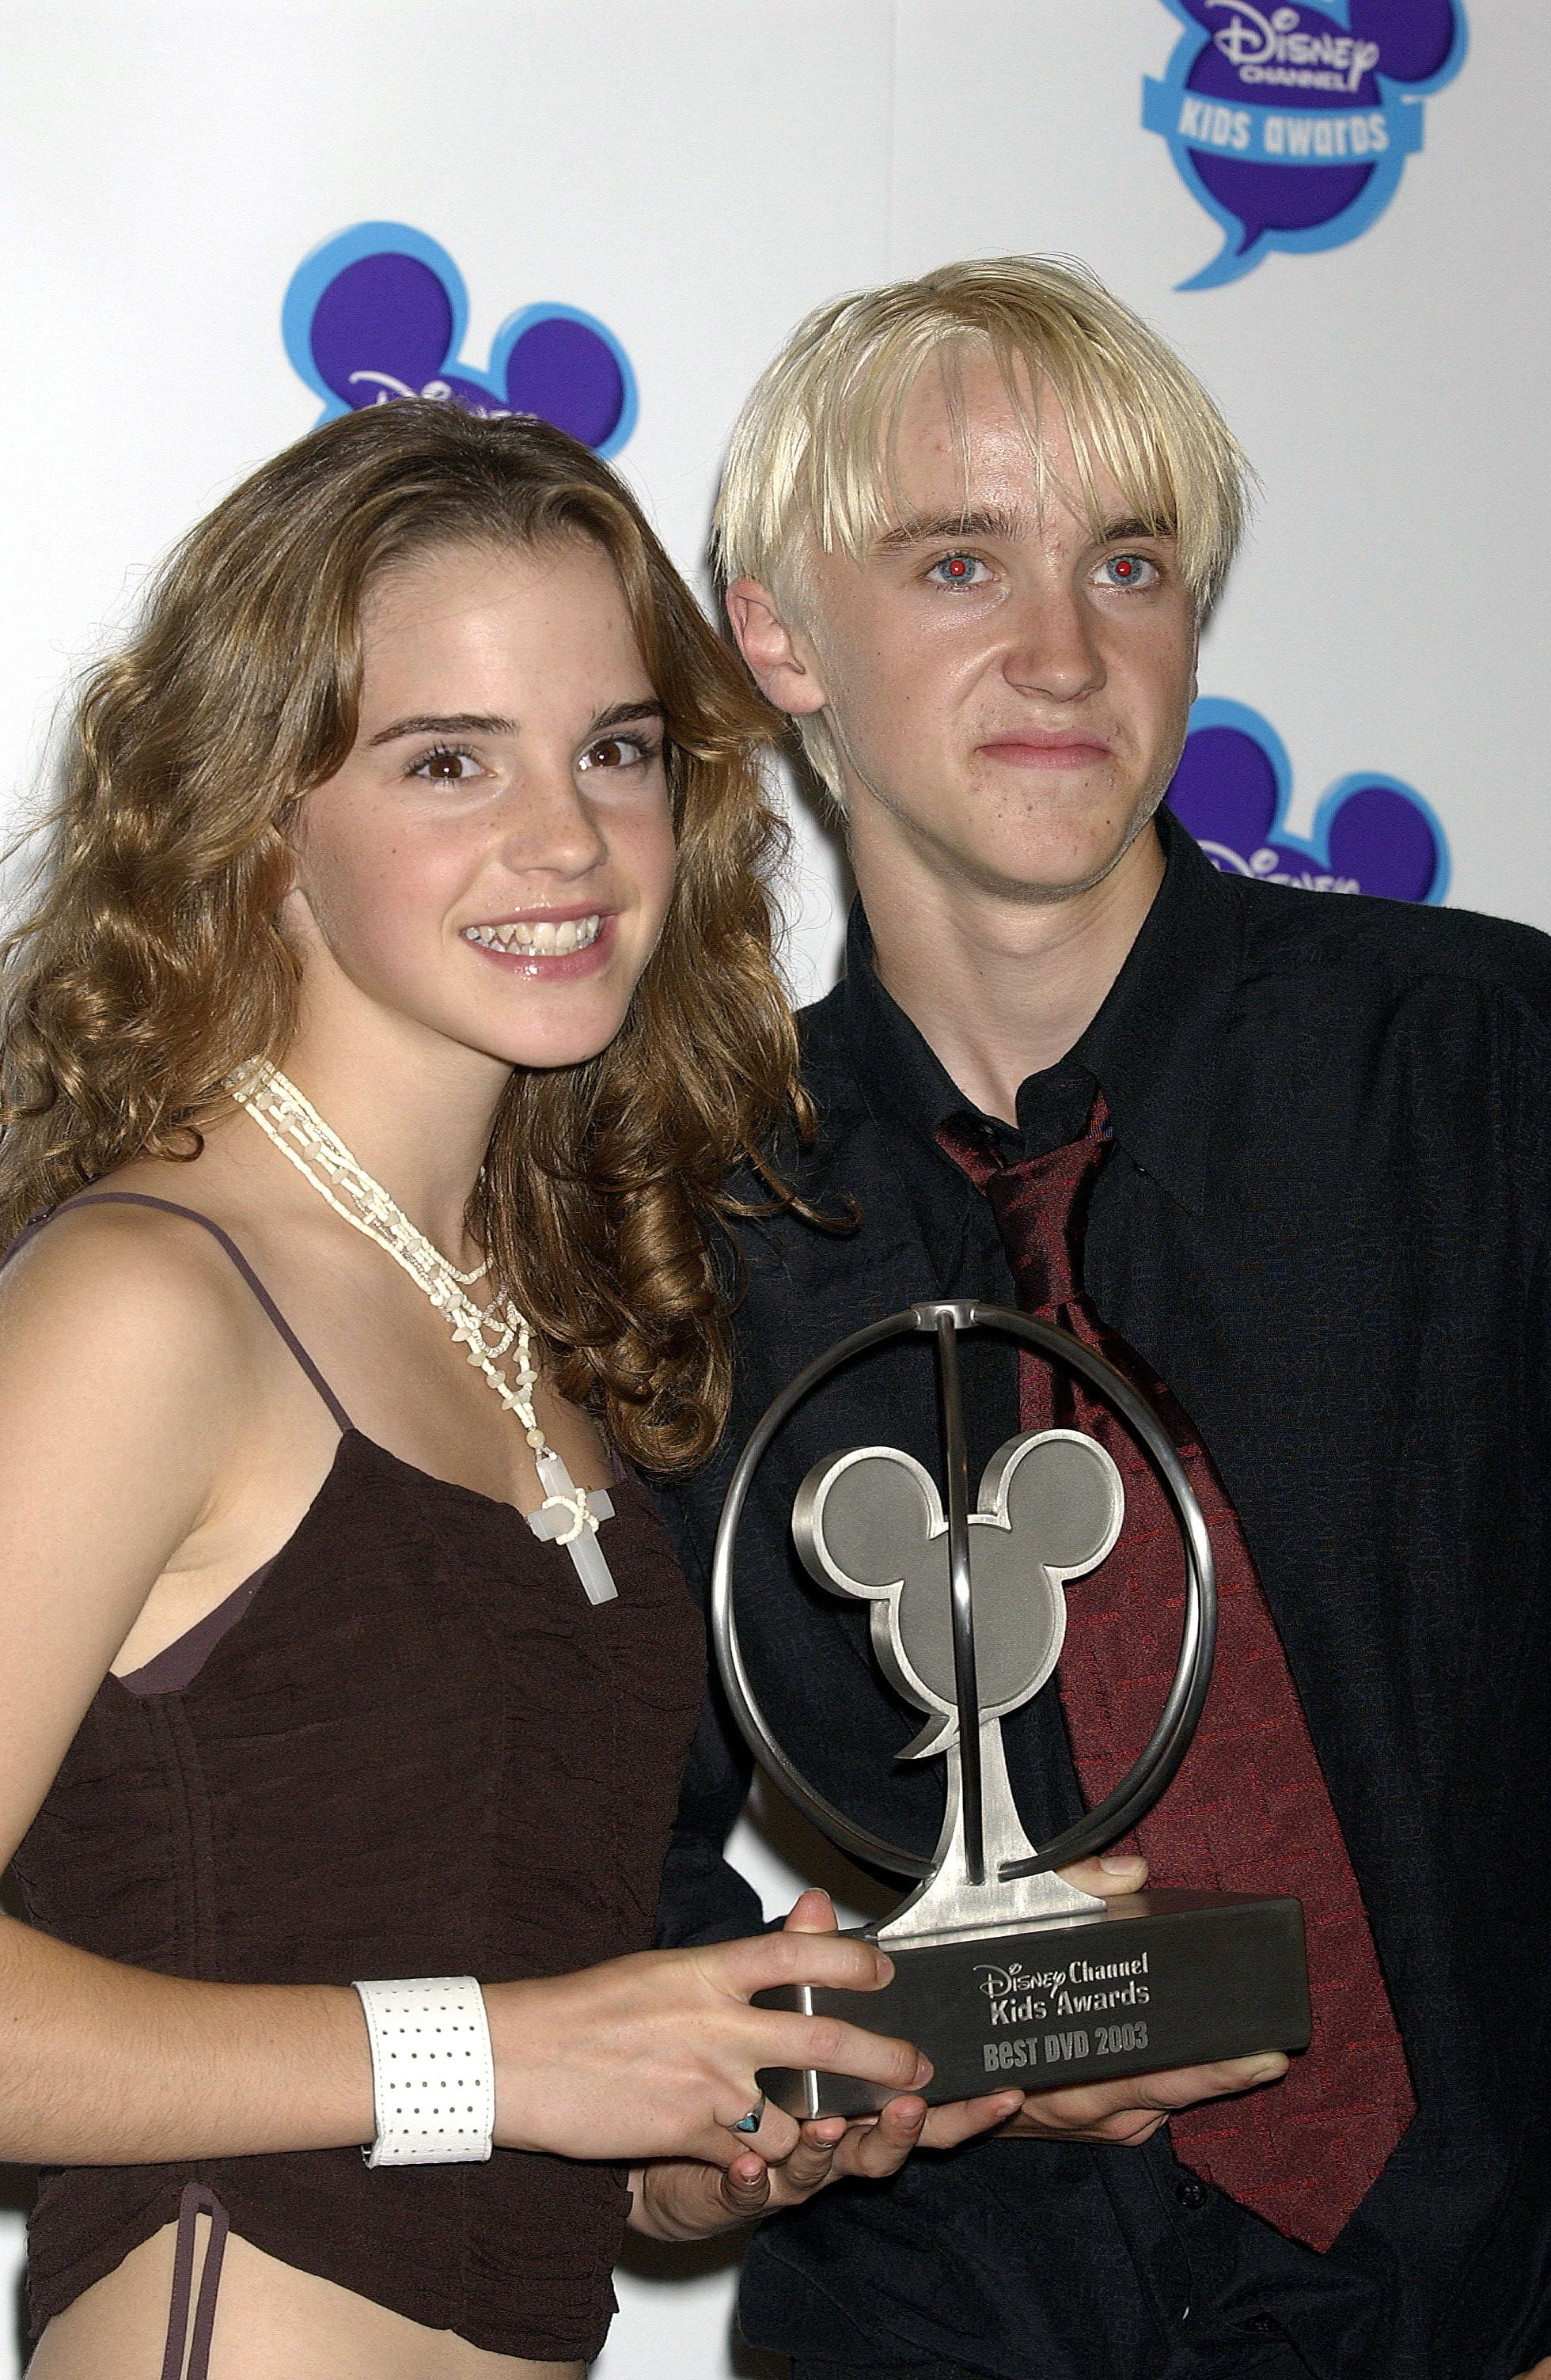 When They Won A Disney Channel Kids Award Emma Watson And Tom Felton S Friendship Makes Us Want To Rewatch All The Harry Potter Films Popsugar Celebrity Photo 13